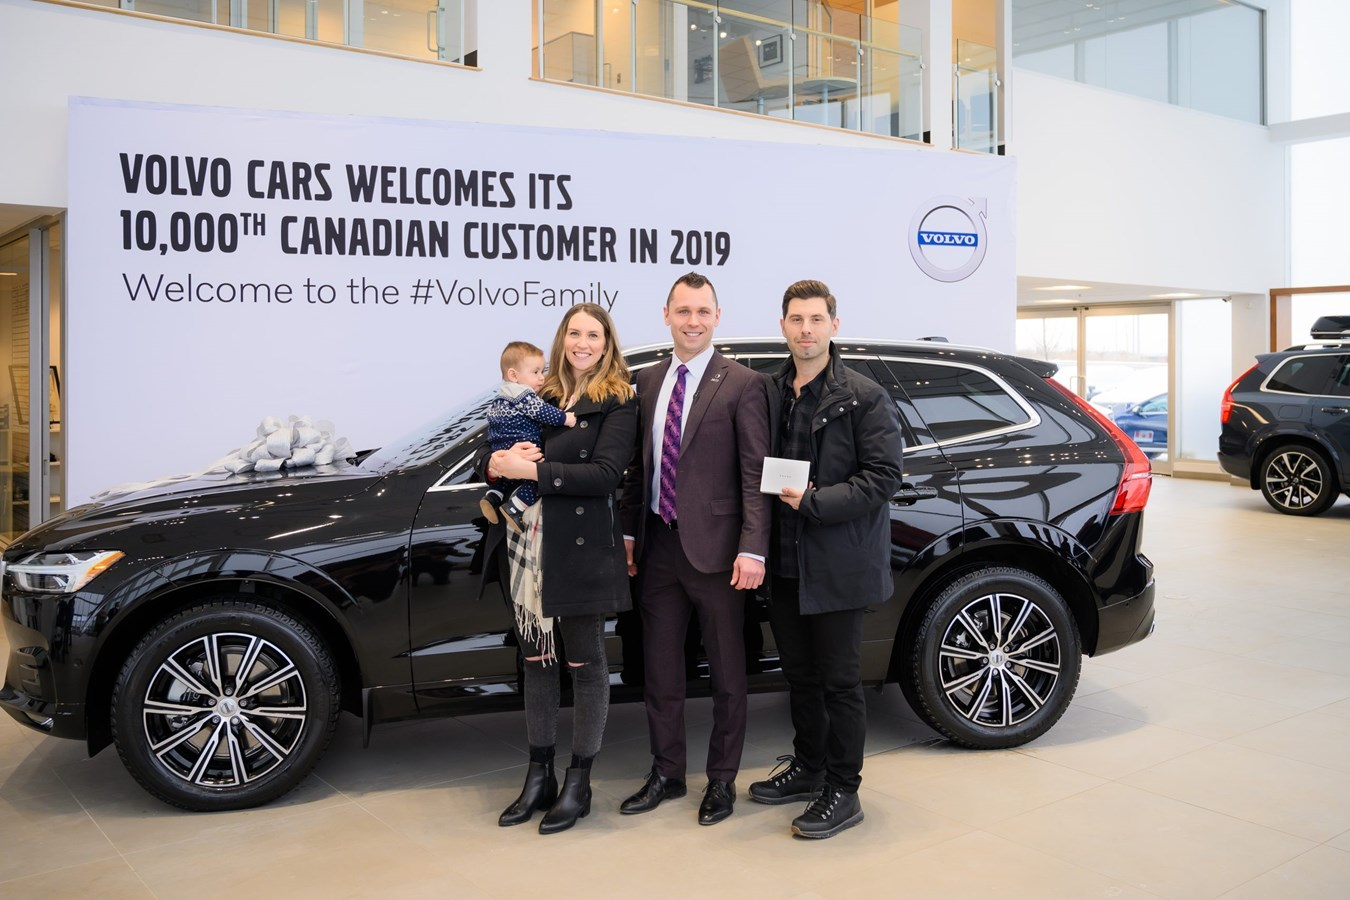 Volvo Cars Canada Celebrates Its 10,000th Customer in 2019 with a Surprise Pre-Paid 42 Month Lease Term